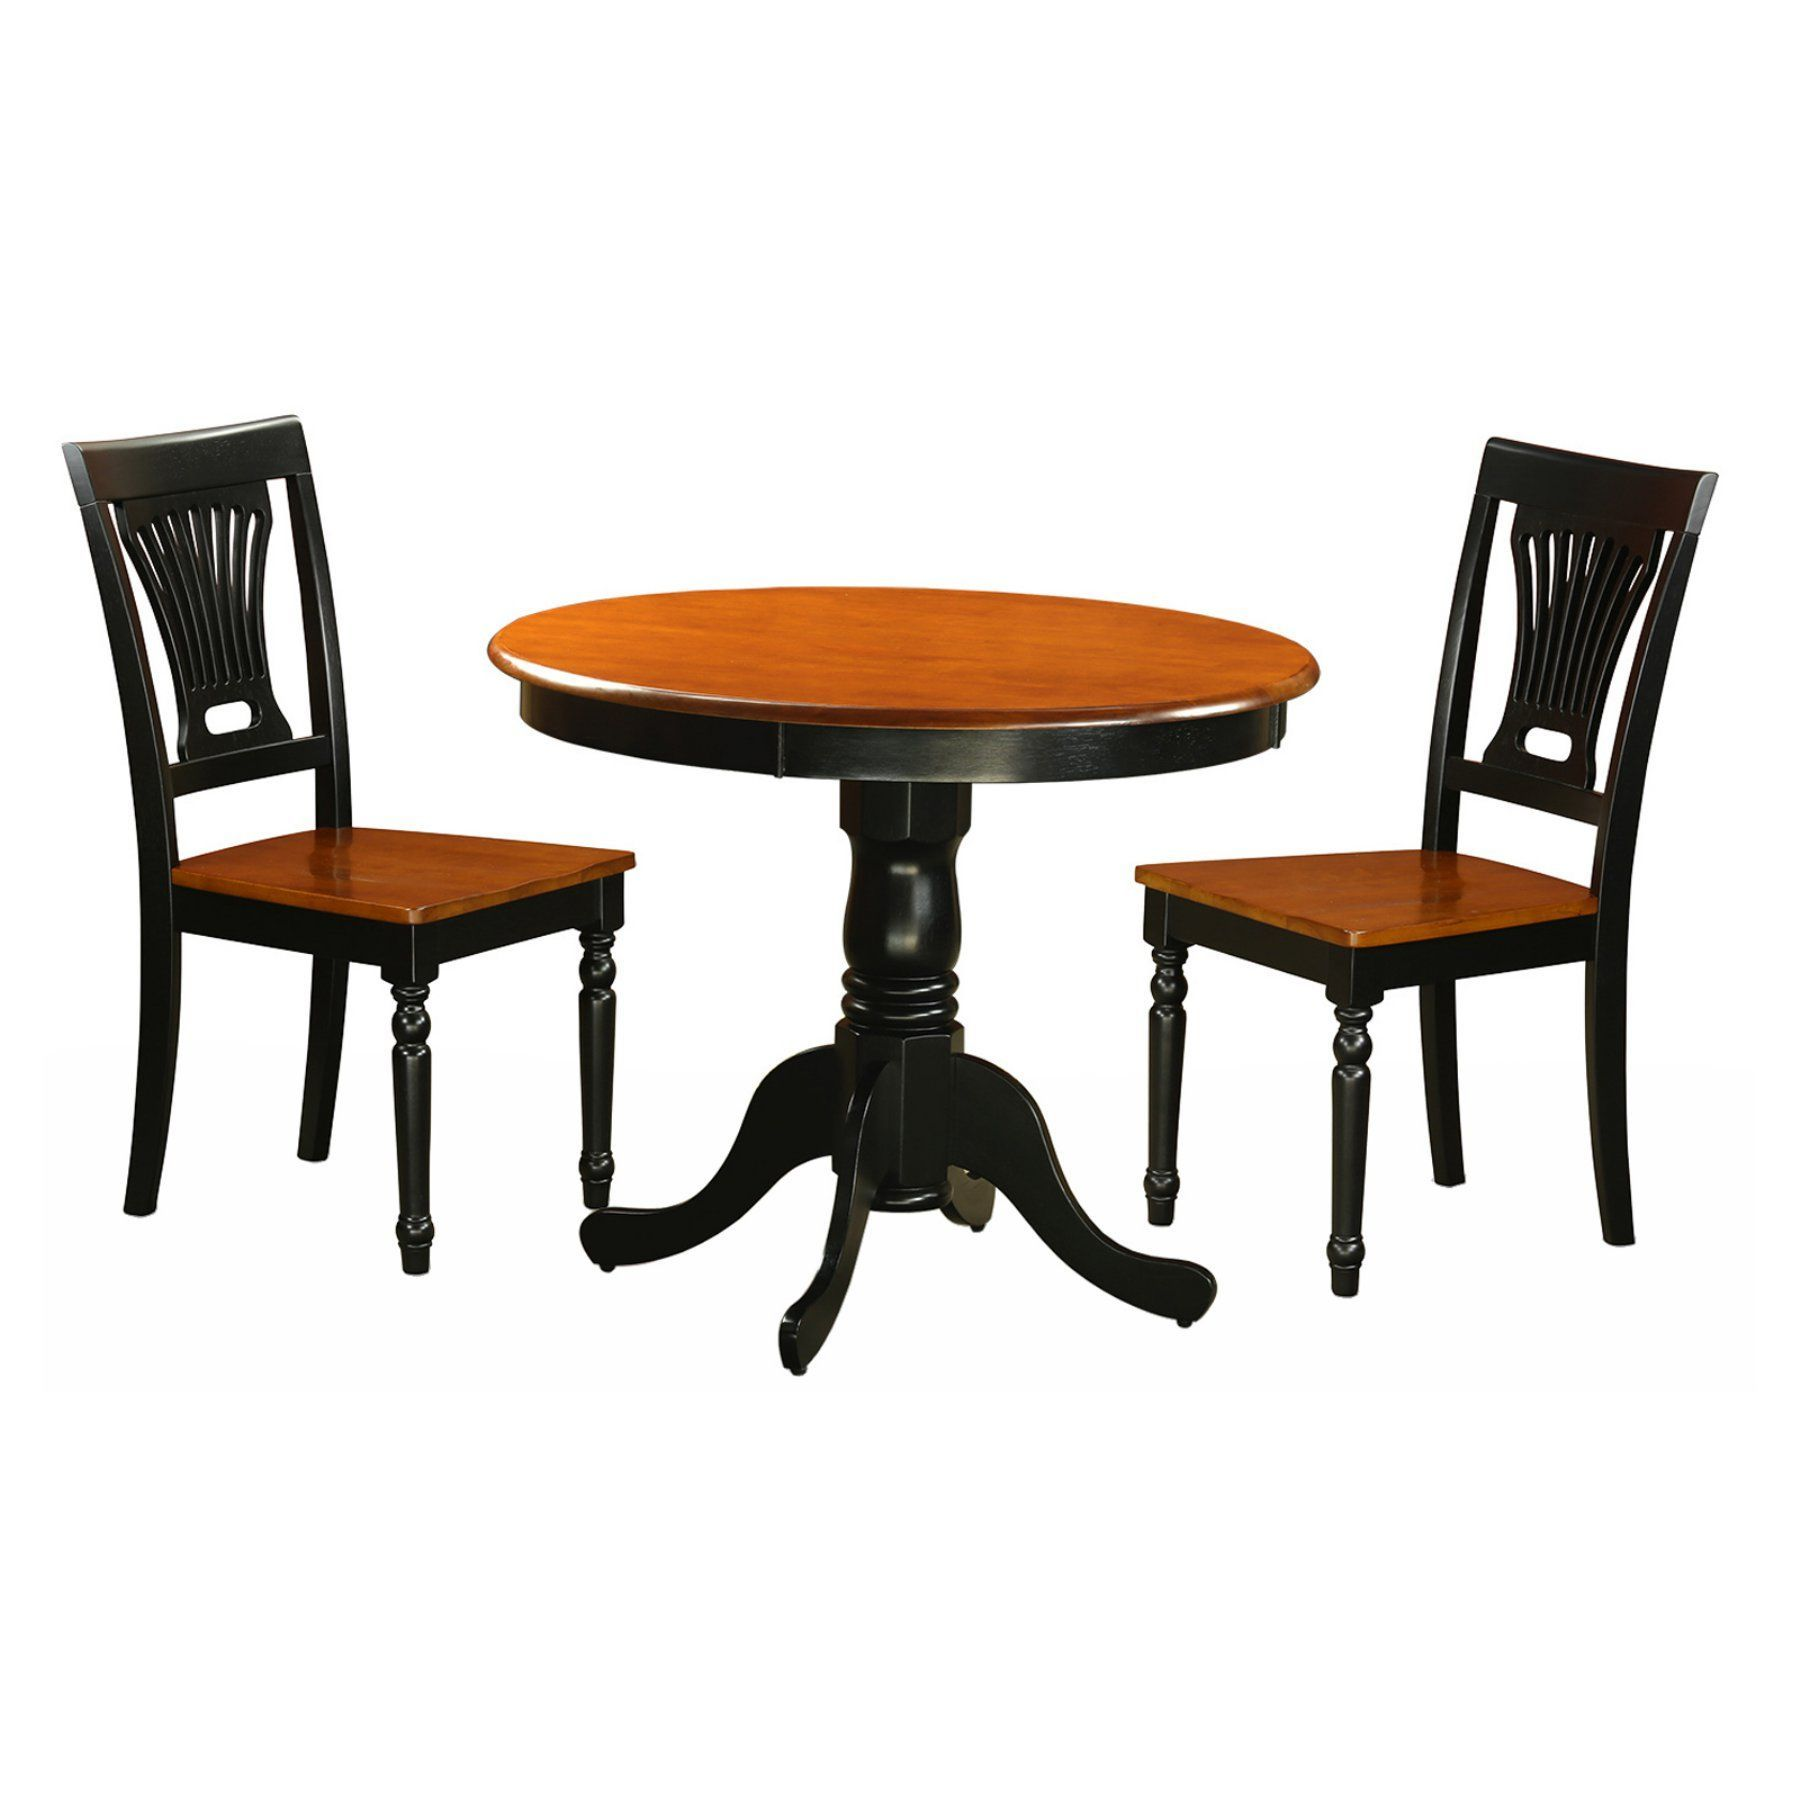 East West Furniture Antique 3 Piece Pedestal Round Dining Table